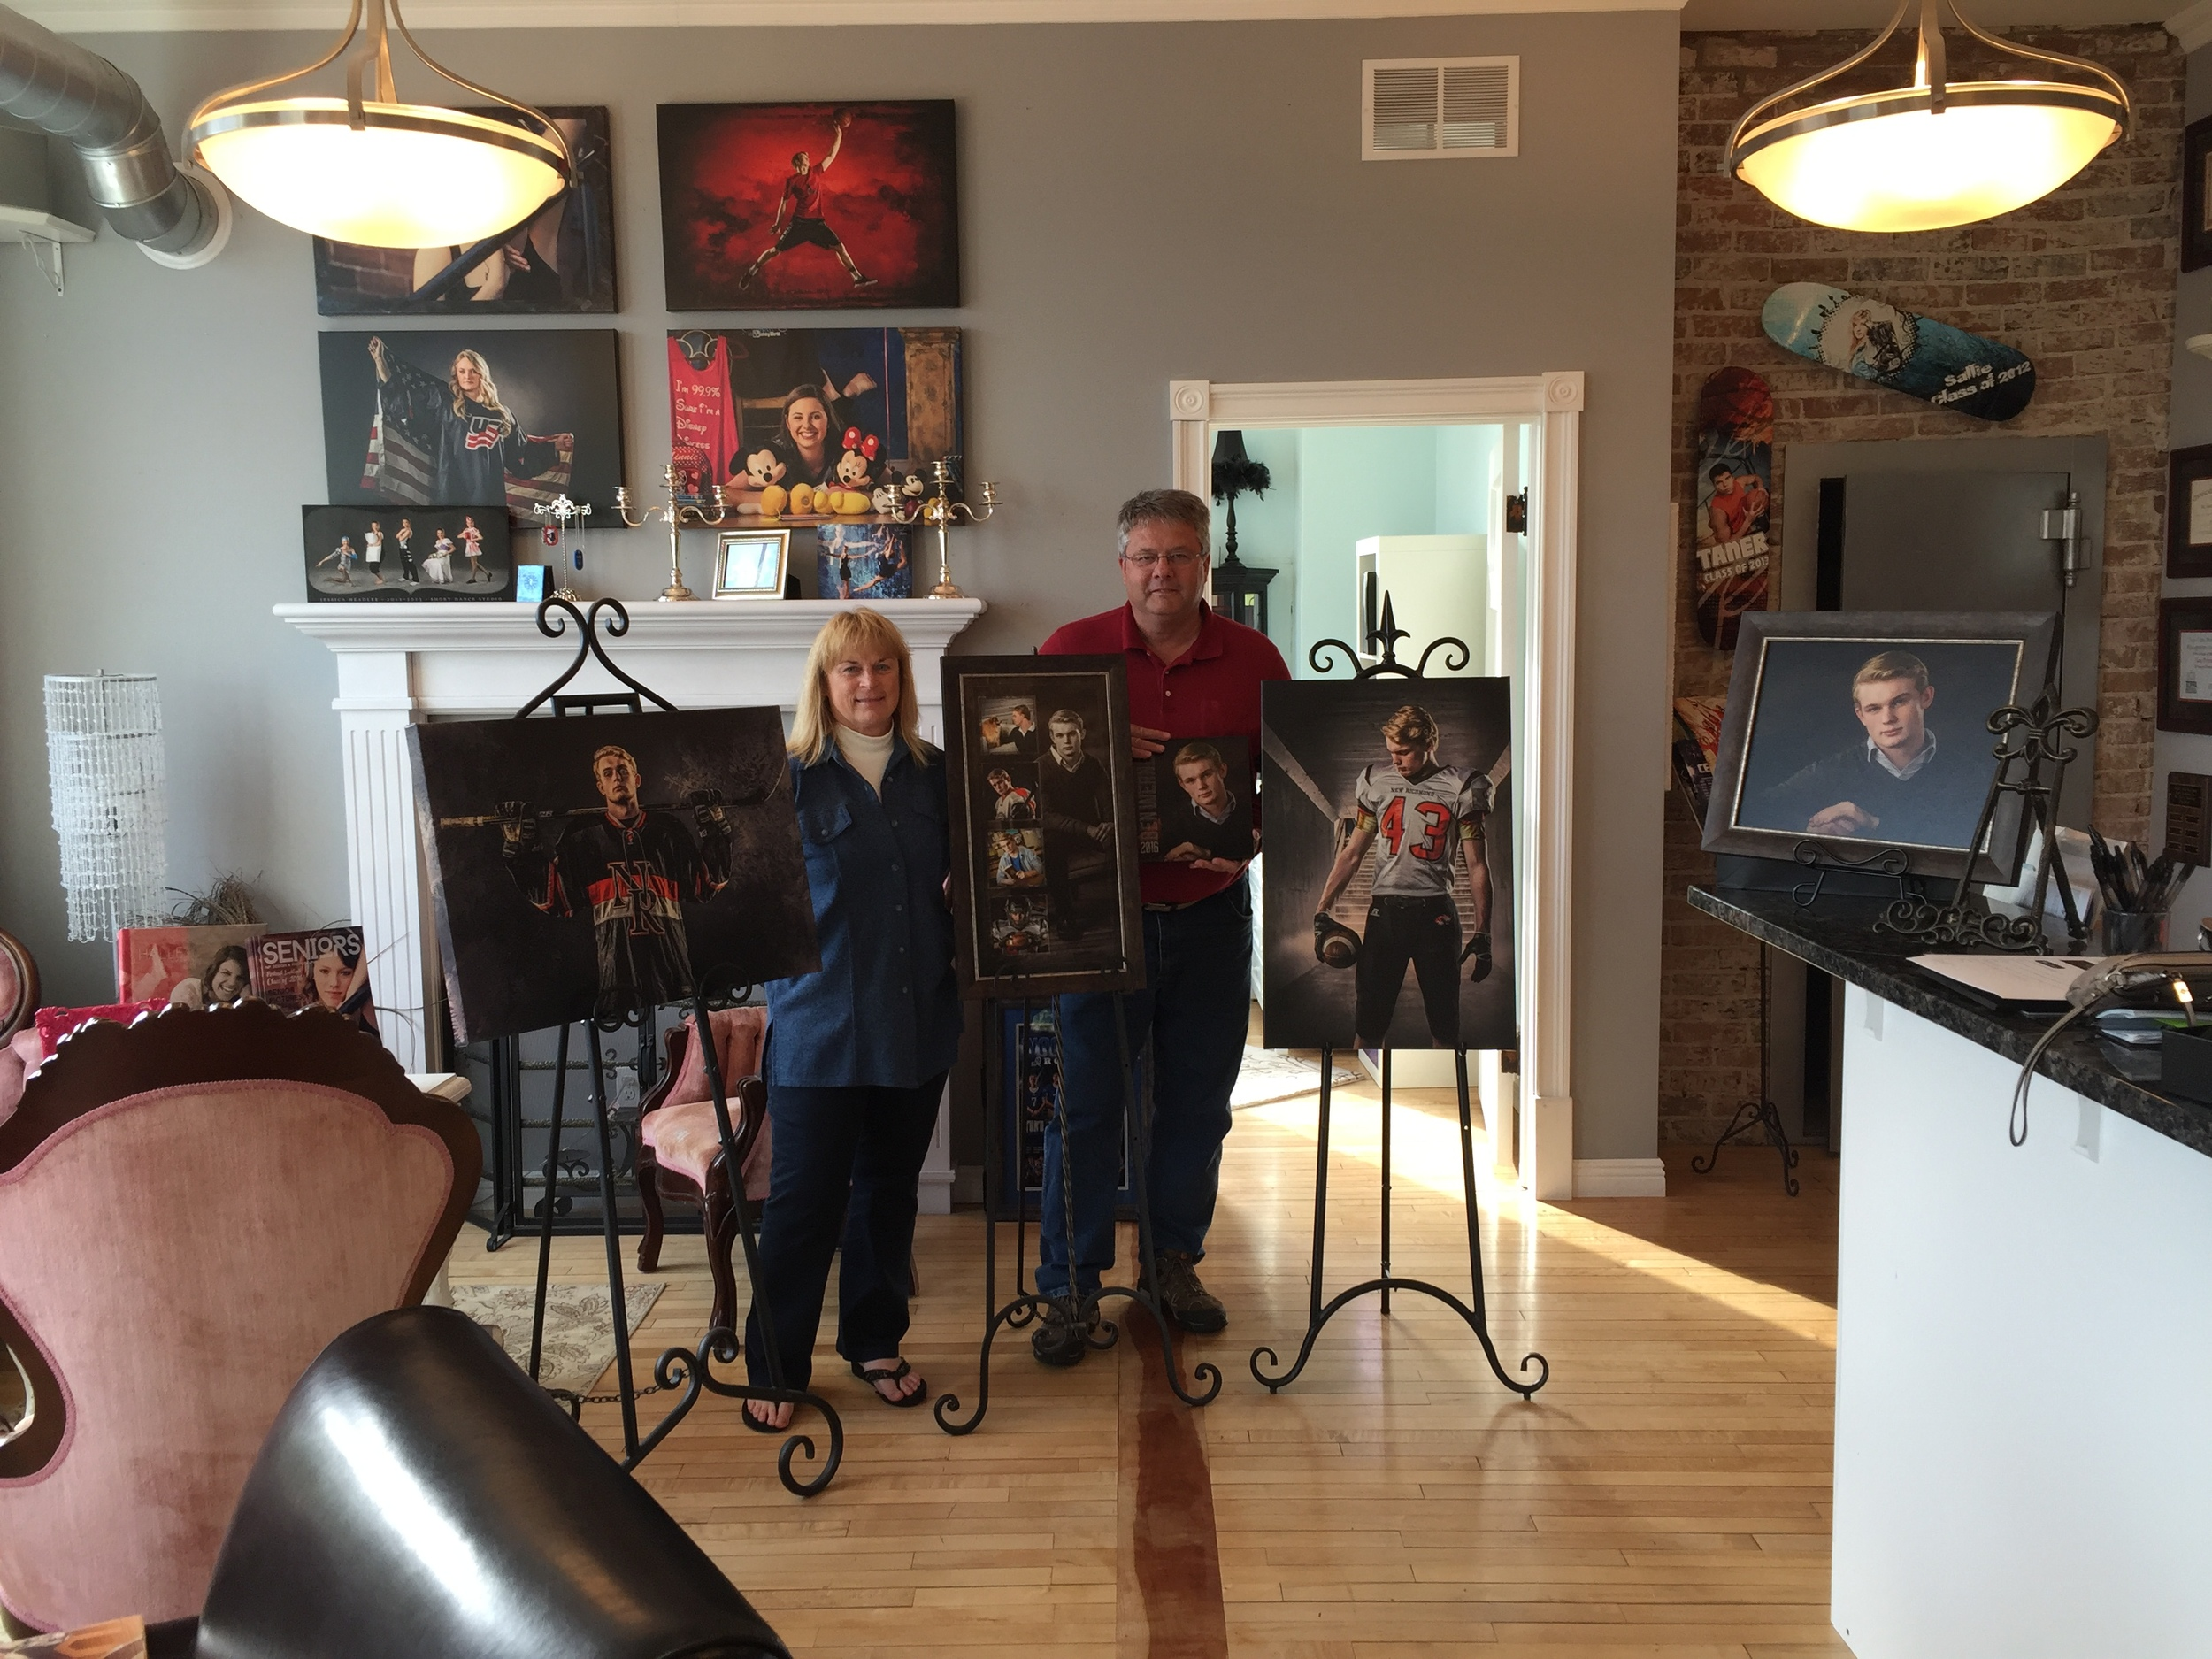 The Werner Family with their son, Ben's wall art collection and Senior album.